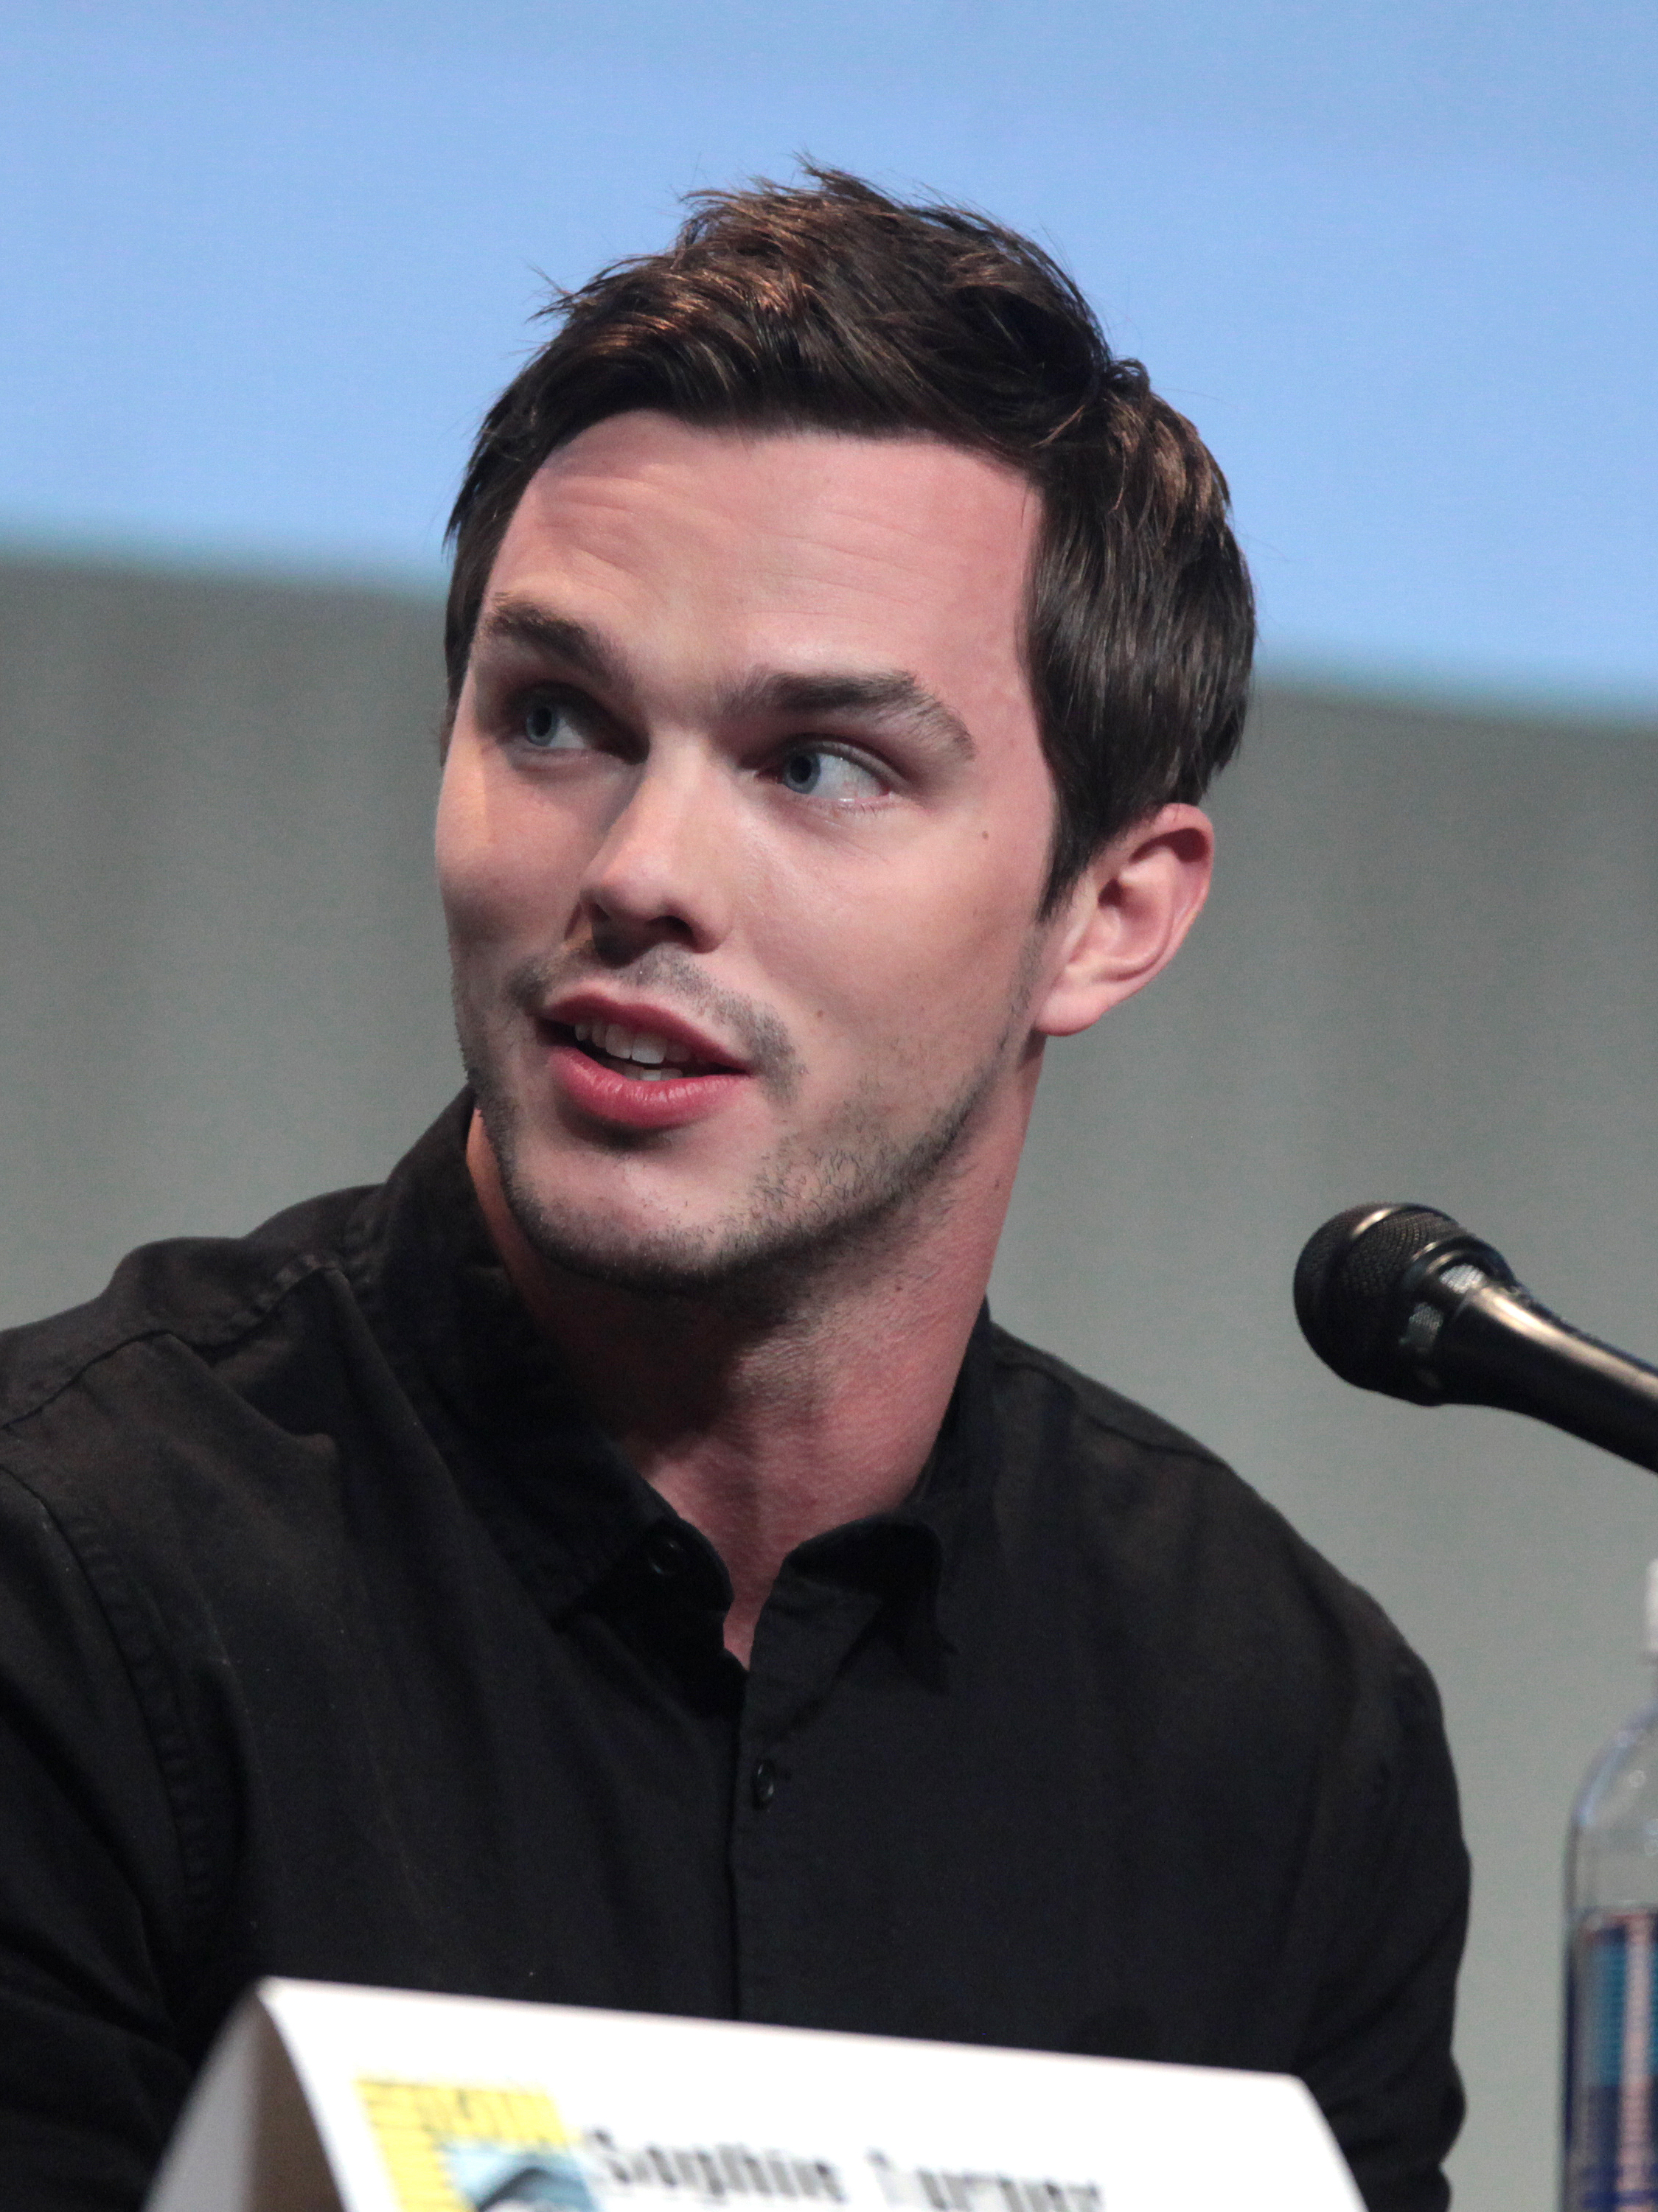 The 28-year old son of father Roger Hoult  and mother Glenis Hoult  Nicholas Hoult in 2018 photo. Nicholas Hoult earned a  million dollar salary - leaving the net worth at 4 million in 2018